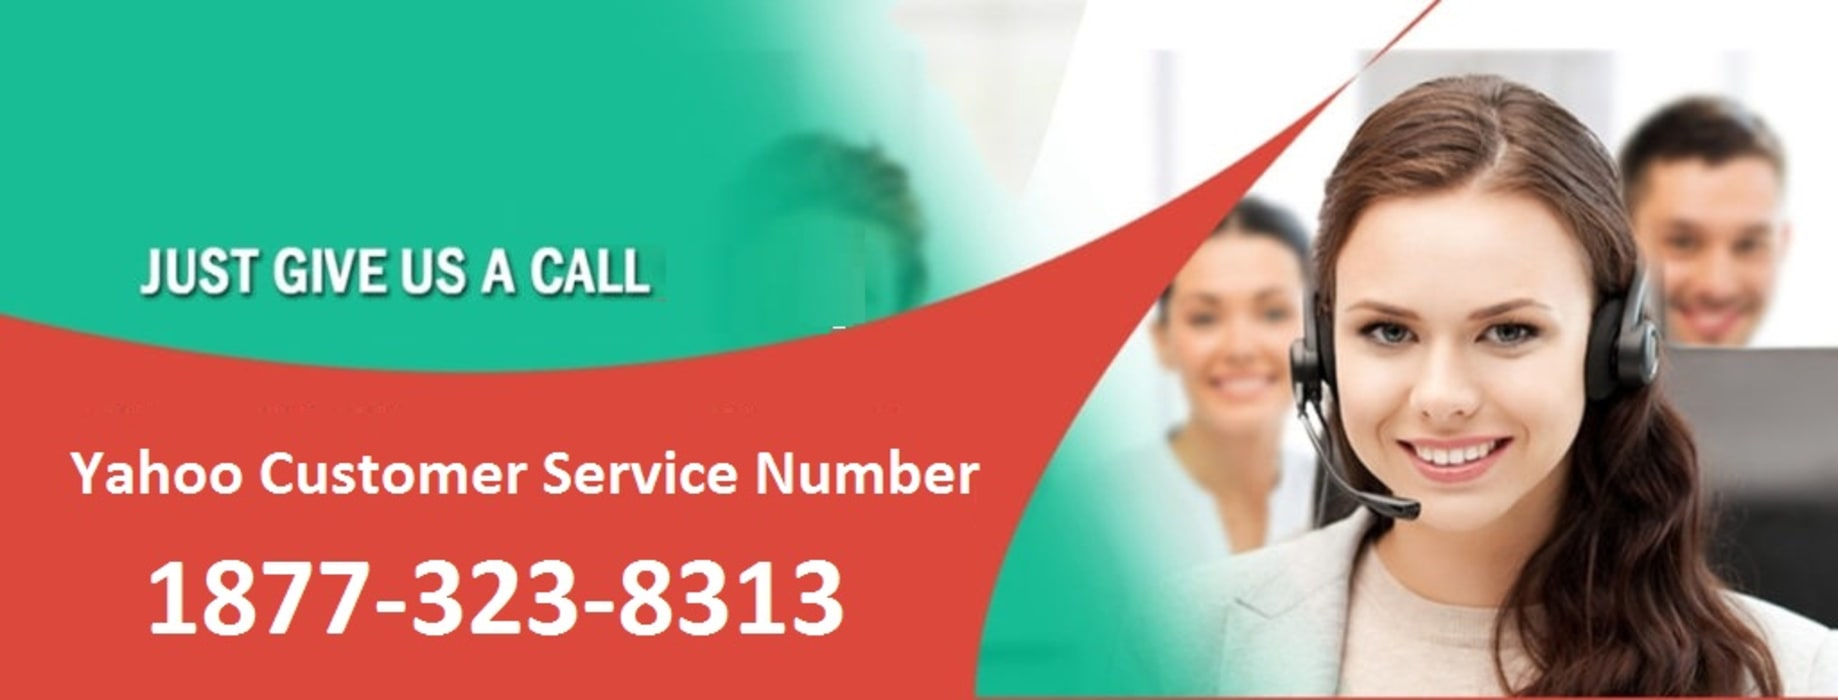 Yahoo Customer care Number 1877-323-8313 for instant support and troubleshooting by Contact Yahoo Representative 1877-323-8313 Country